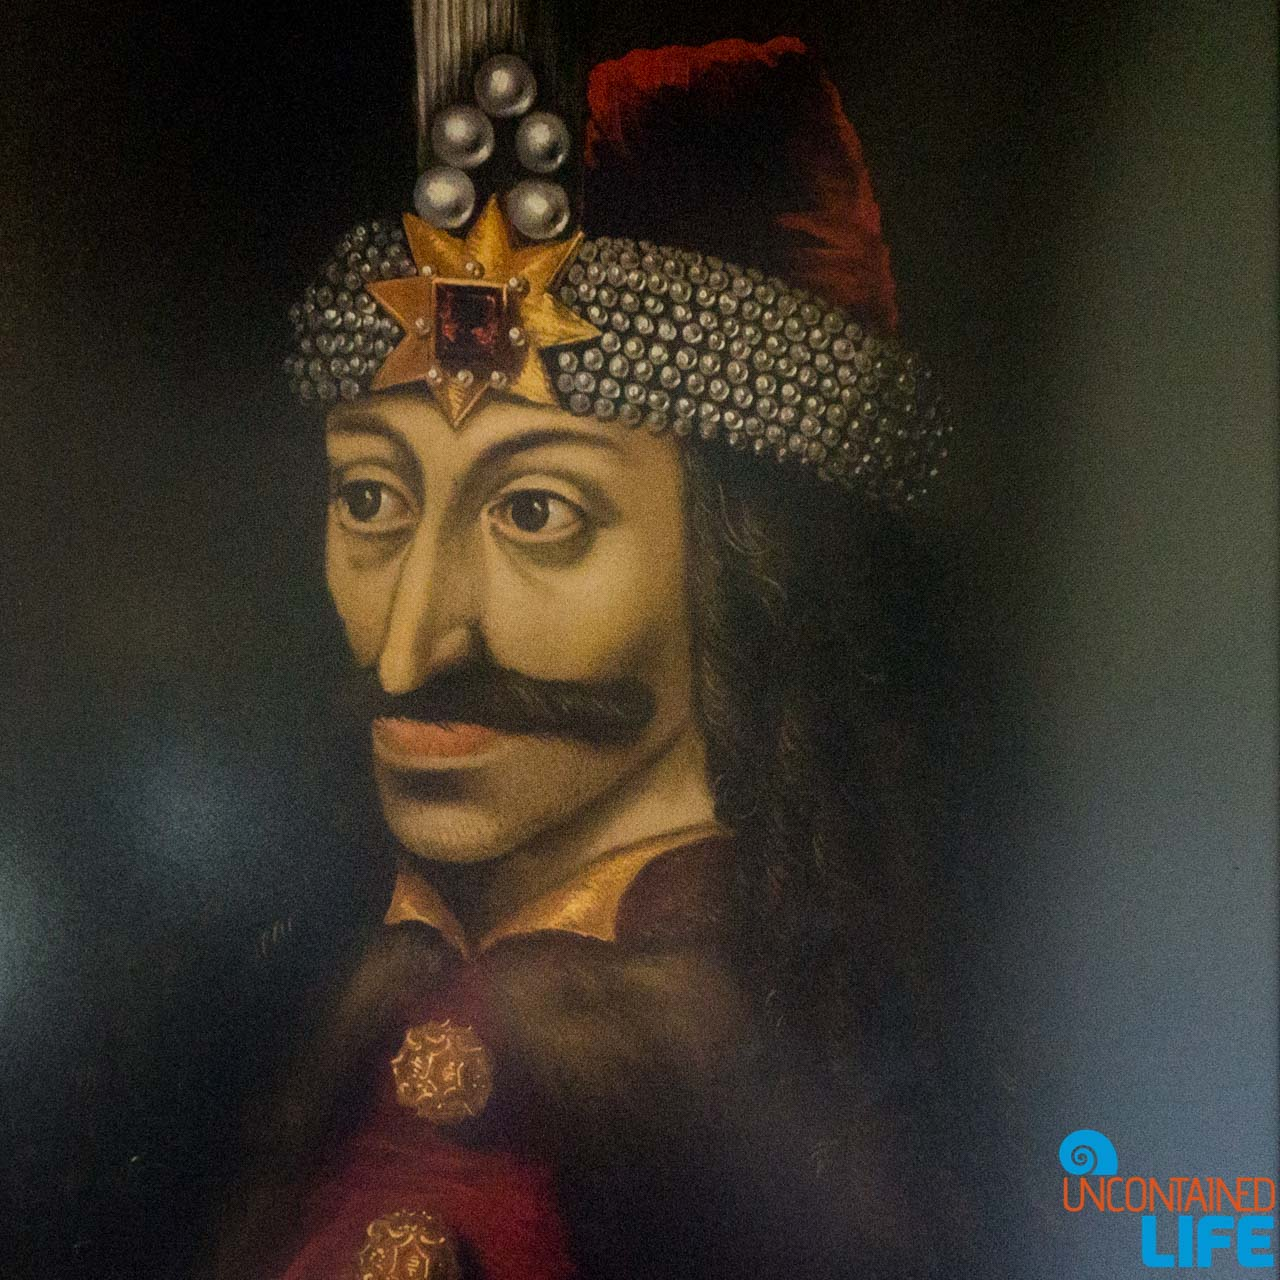 Vlad the Impaler, Road Trip through Transylvania, Romania, Uncontained Life